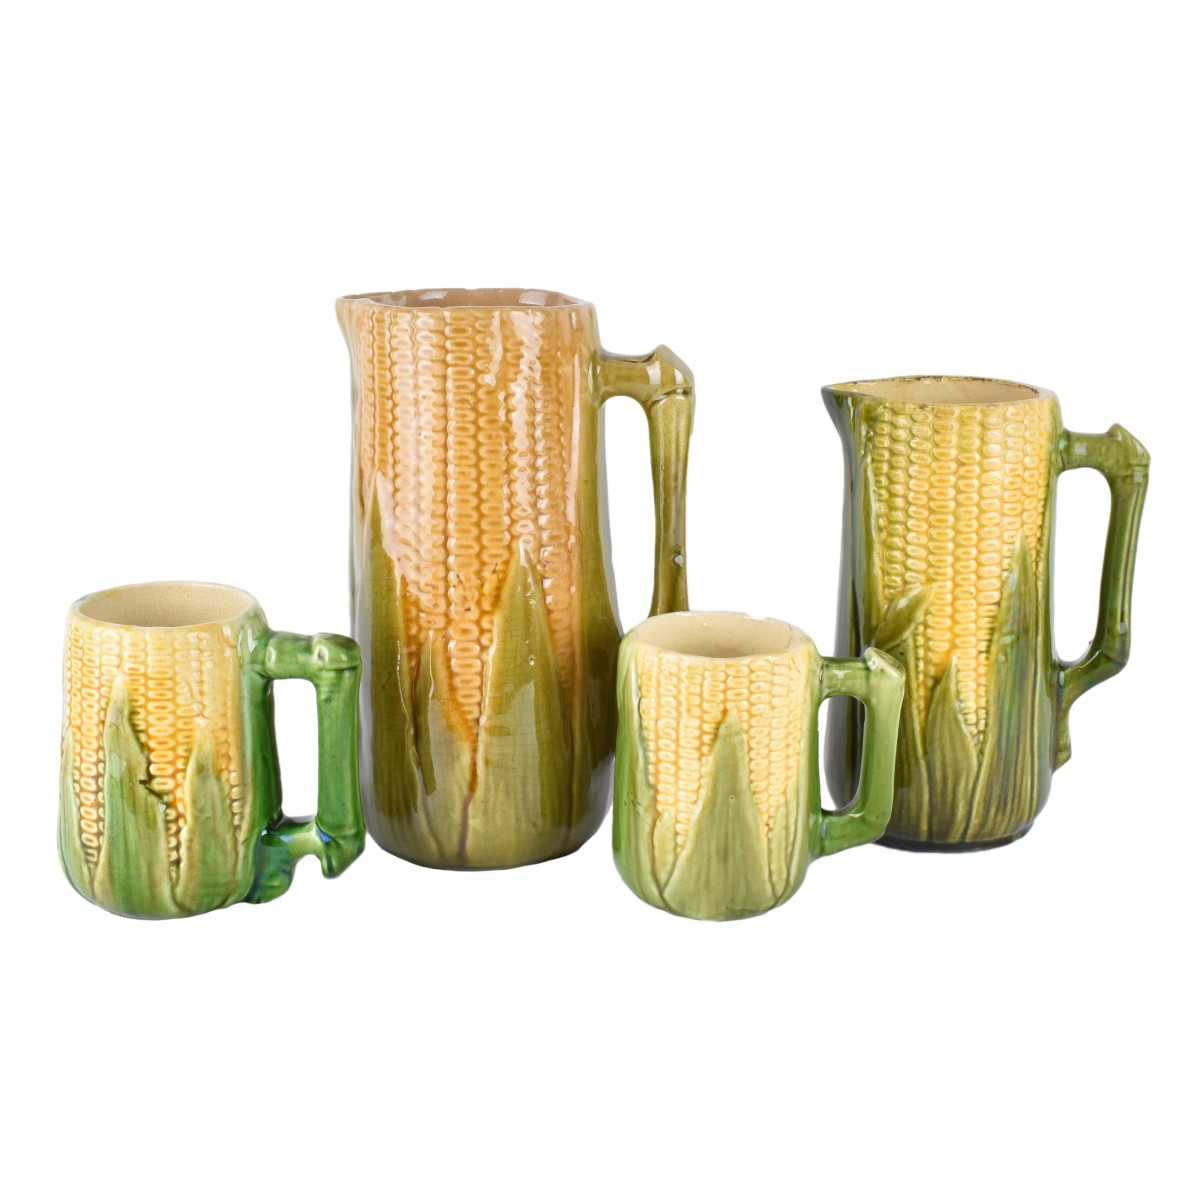 Old Majolica Pitchers